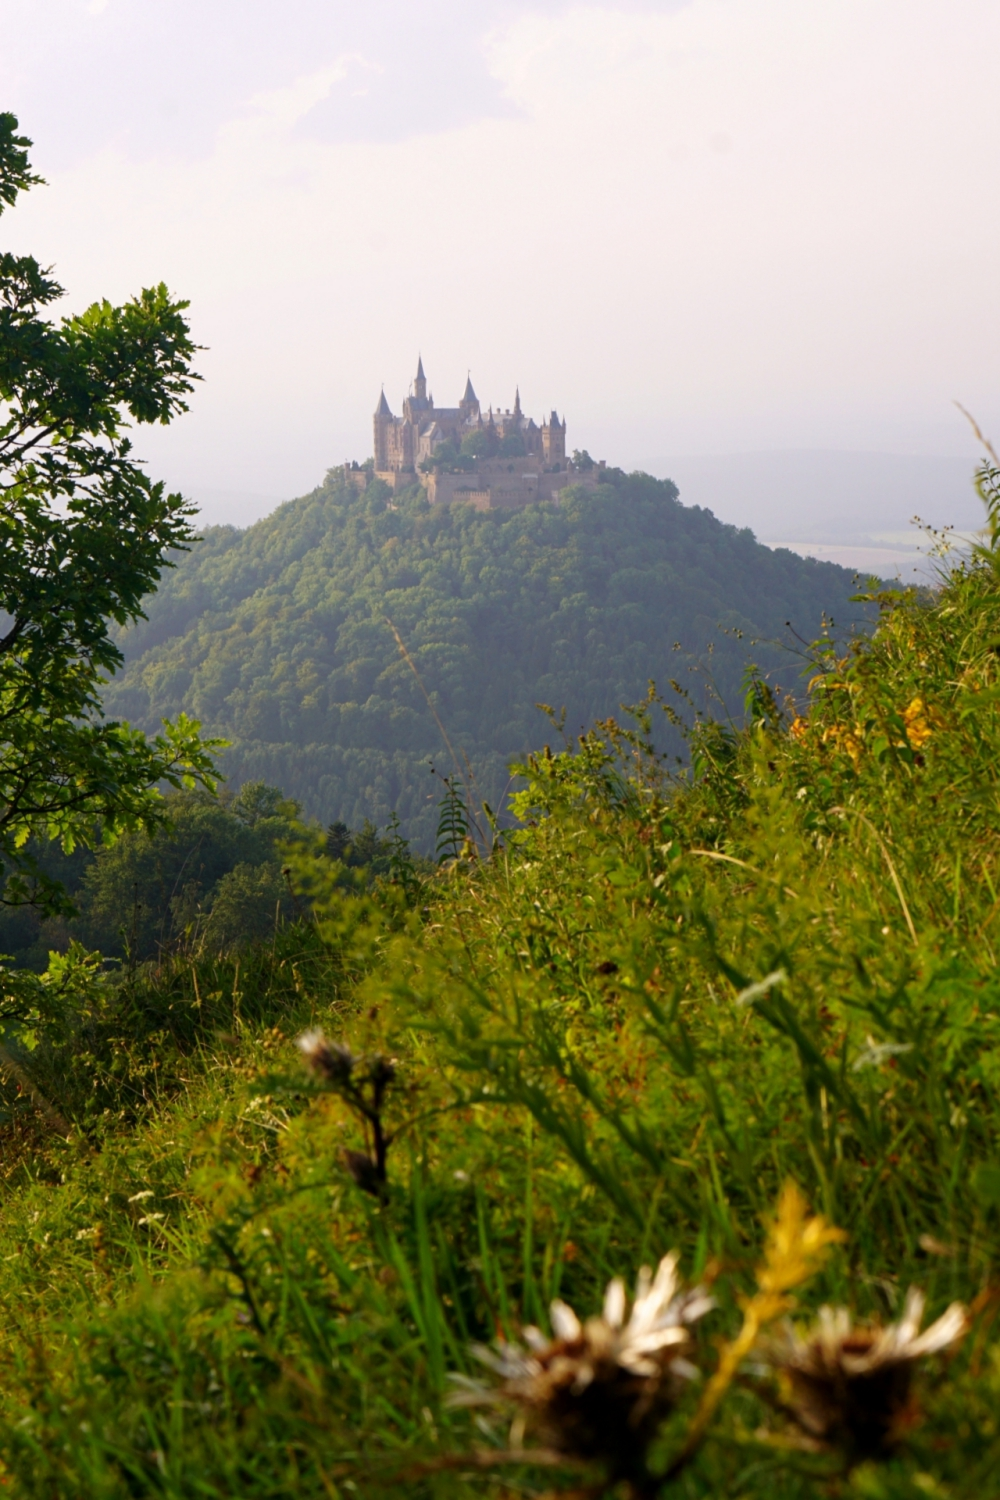 Hohenzollern Castle seen from a hill with wild flowers